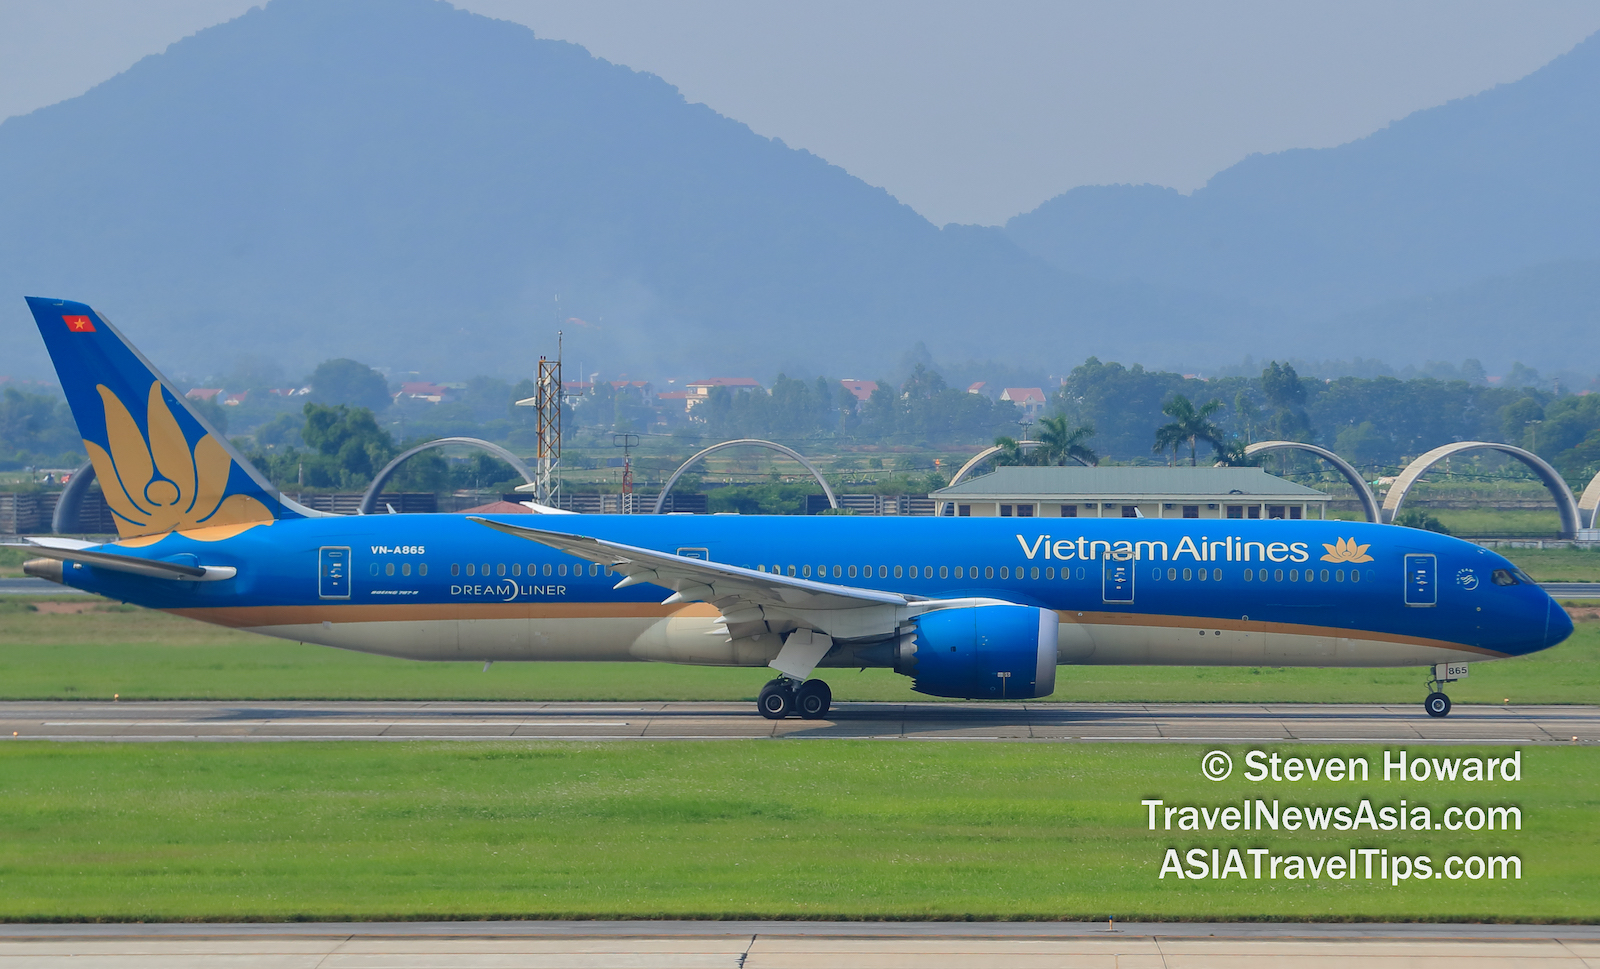 Image of article 'Vietnam Airlines to resume flights to Japan from Hanoi and Saigon on Sept 18'